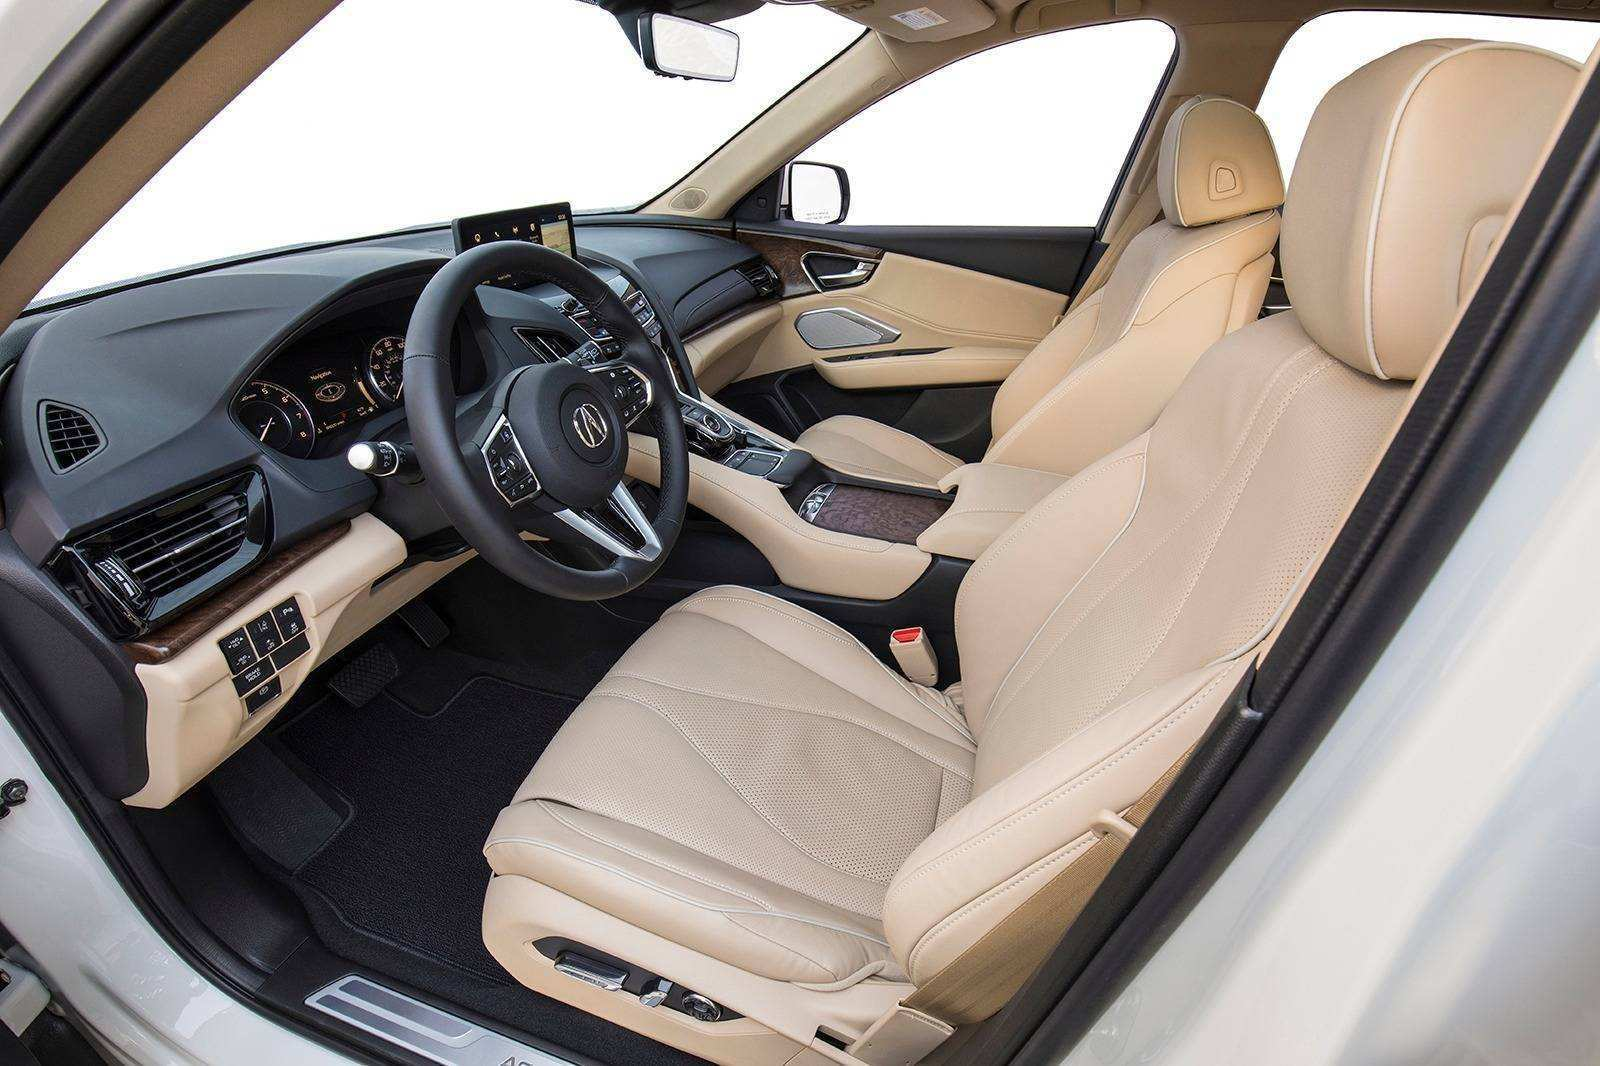 25 Great New Acura Rdx 2019 Option Packages Review And Specs Wallpaper with New Acura Rdx 2019 Option Packages Review And Specs